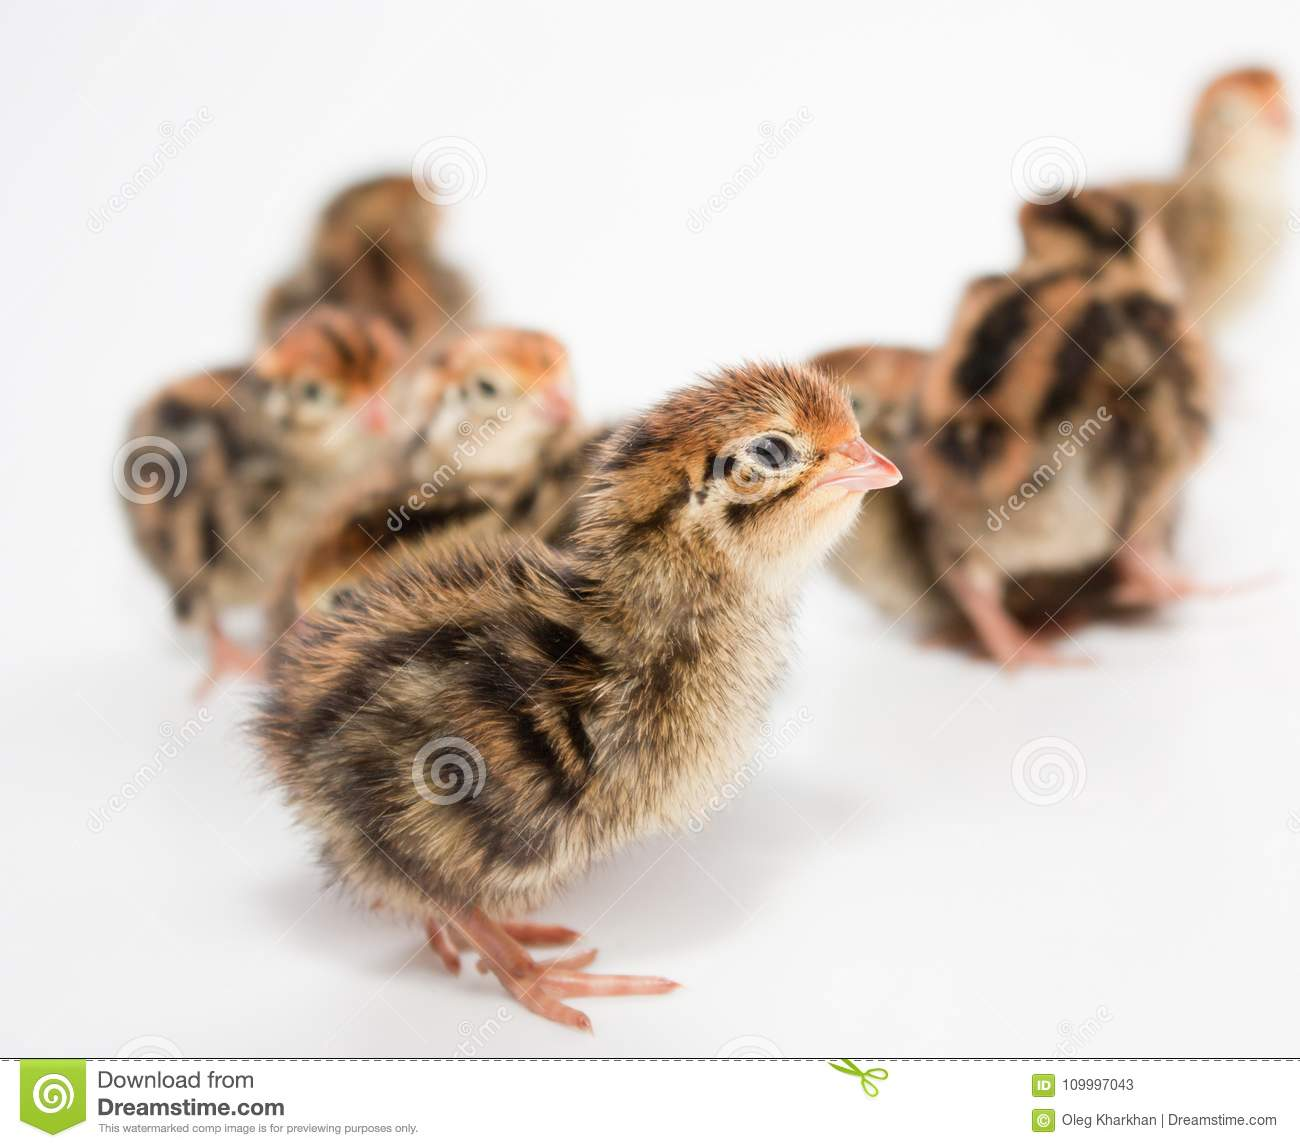 Some Baby Quail Stock Image Image Of Couple Brown 109997043